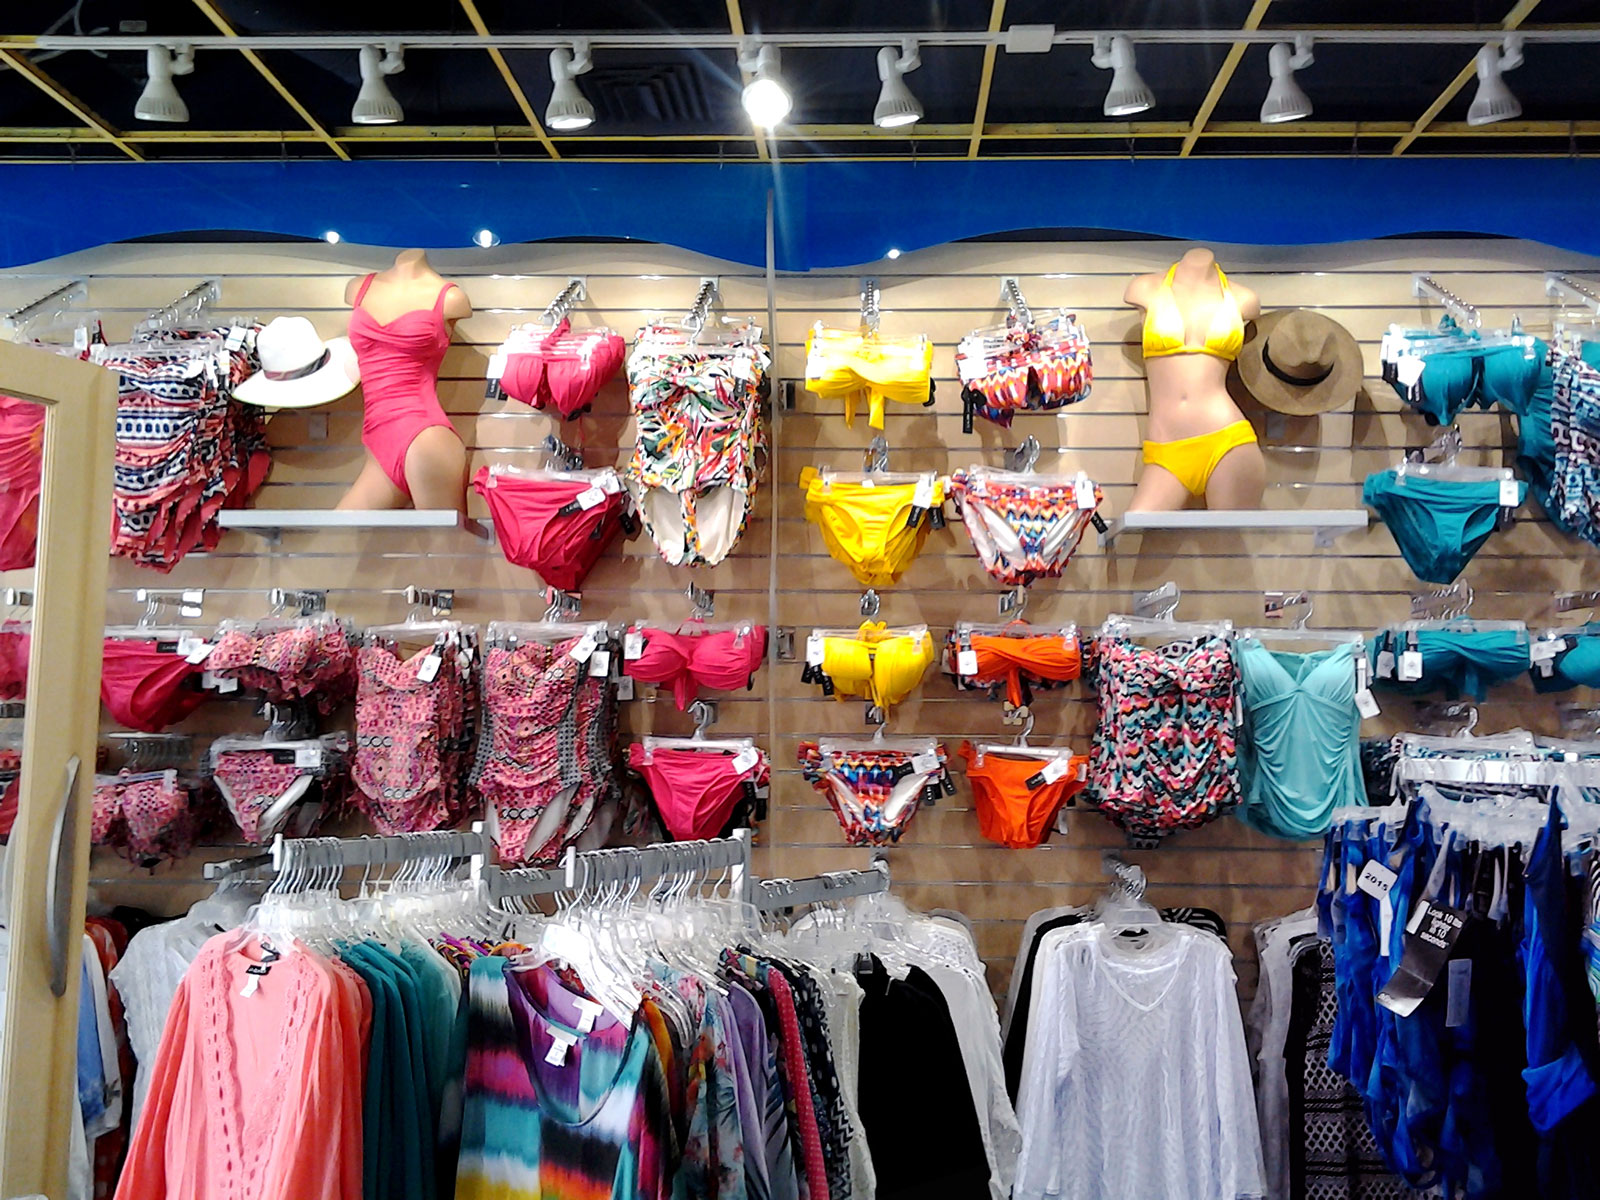 Bikini Retail Store Lighting In US